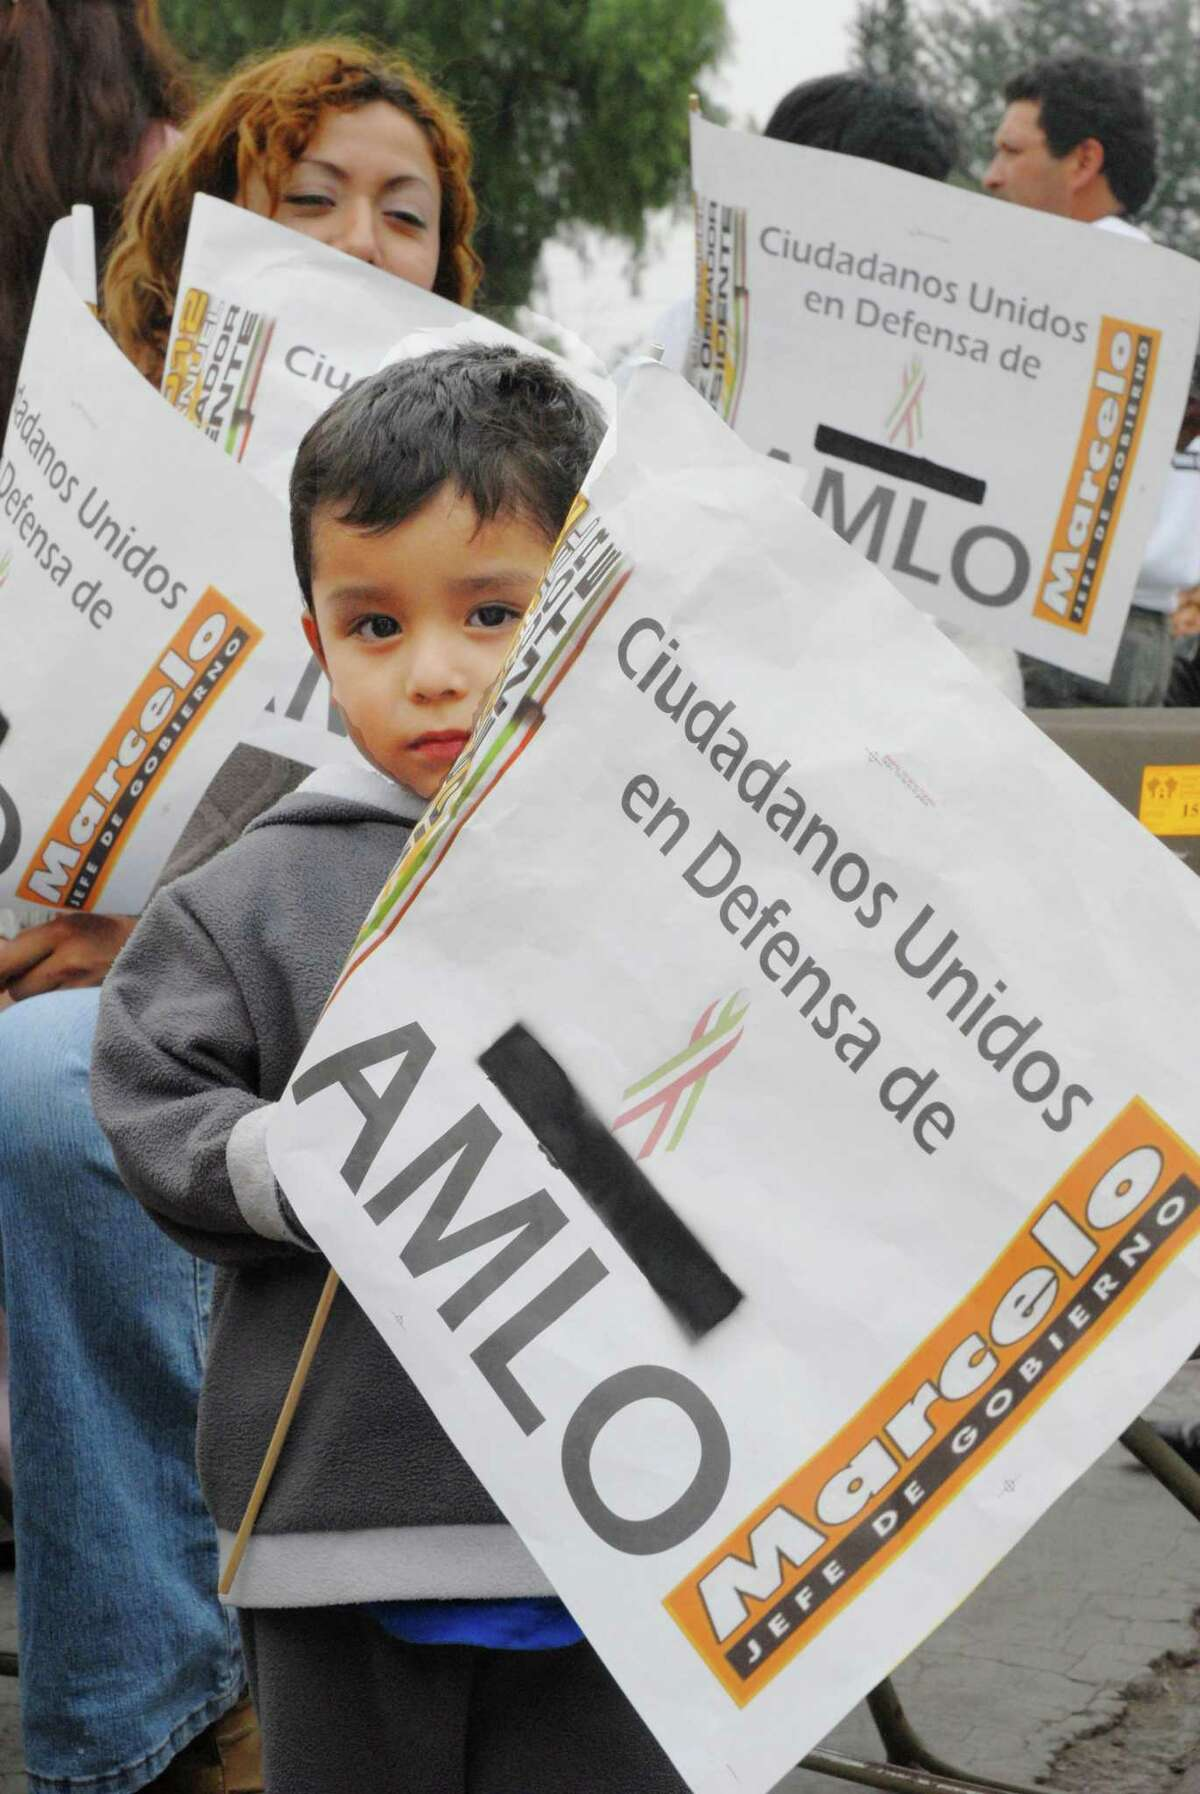 """A child holds a sign in support of Andres Manuel Lopez Obrador during a rally in the working class Iztapalapa borough of Mexico City on Thursday, Nov. 16, 2006. The rally was one of dozens nationwide aimed at firing up supporters ahead of Lopez Obrador's """"swearing-in"""" as the """"legitimate president of Mexico"""" on Nov. 20."""